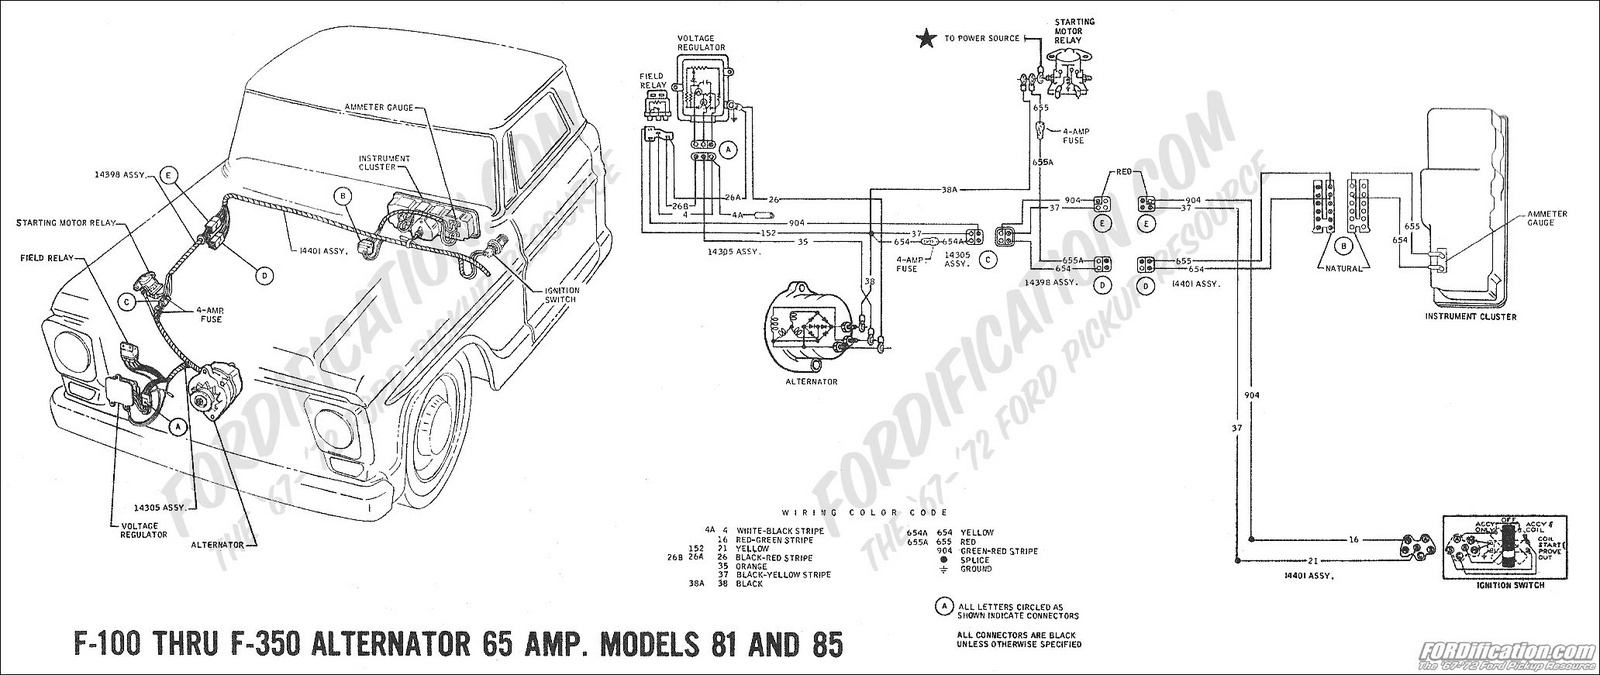 hight resolution of 1978 f150 alternator wiring diagram wiring diagrams 2013 ford f 150 wiring diagram 1977 ford